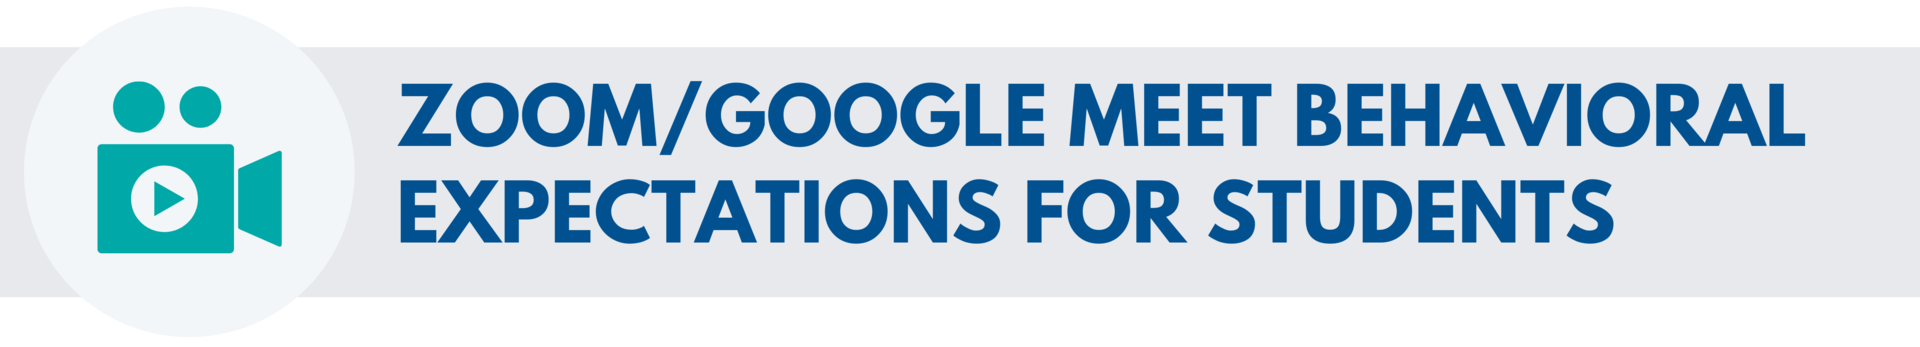 Zoom/Google Meet Behavioral Expectations for Students